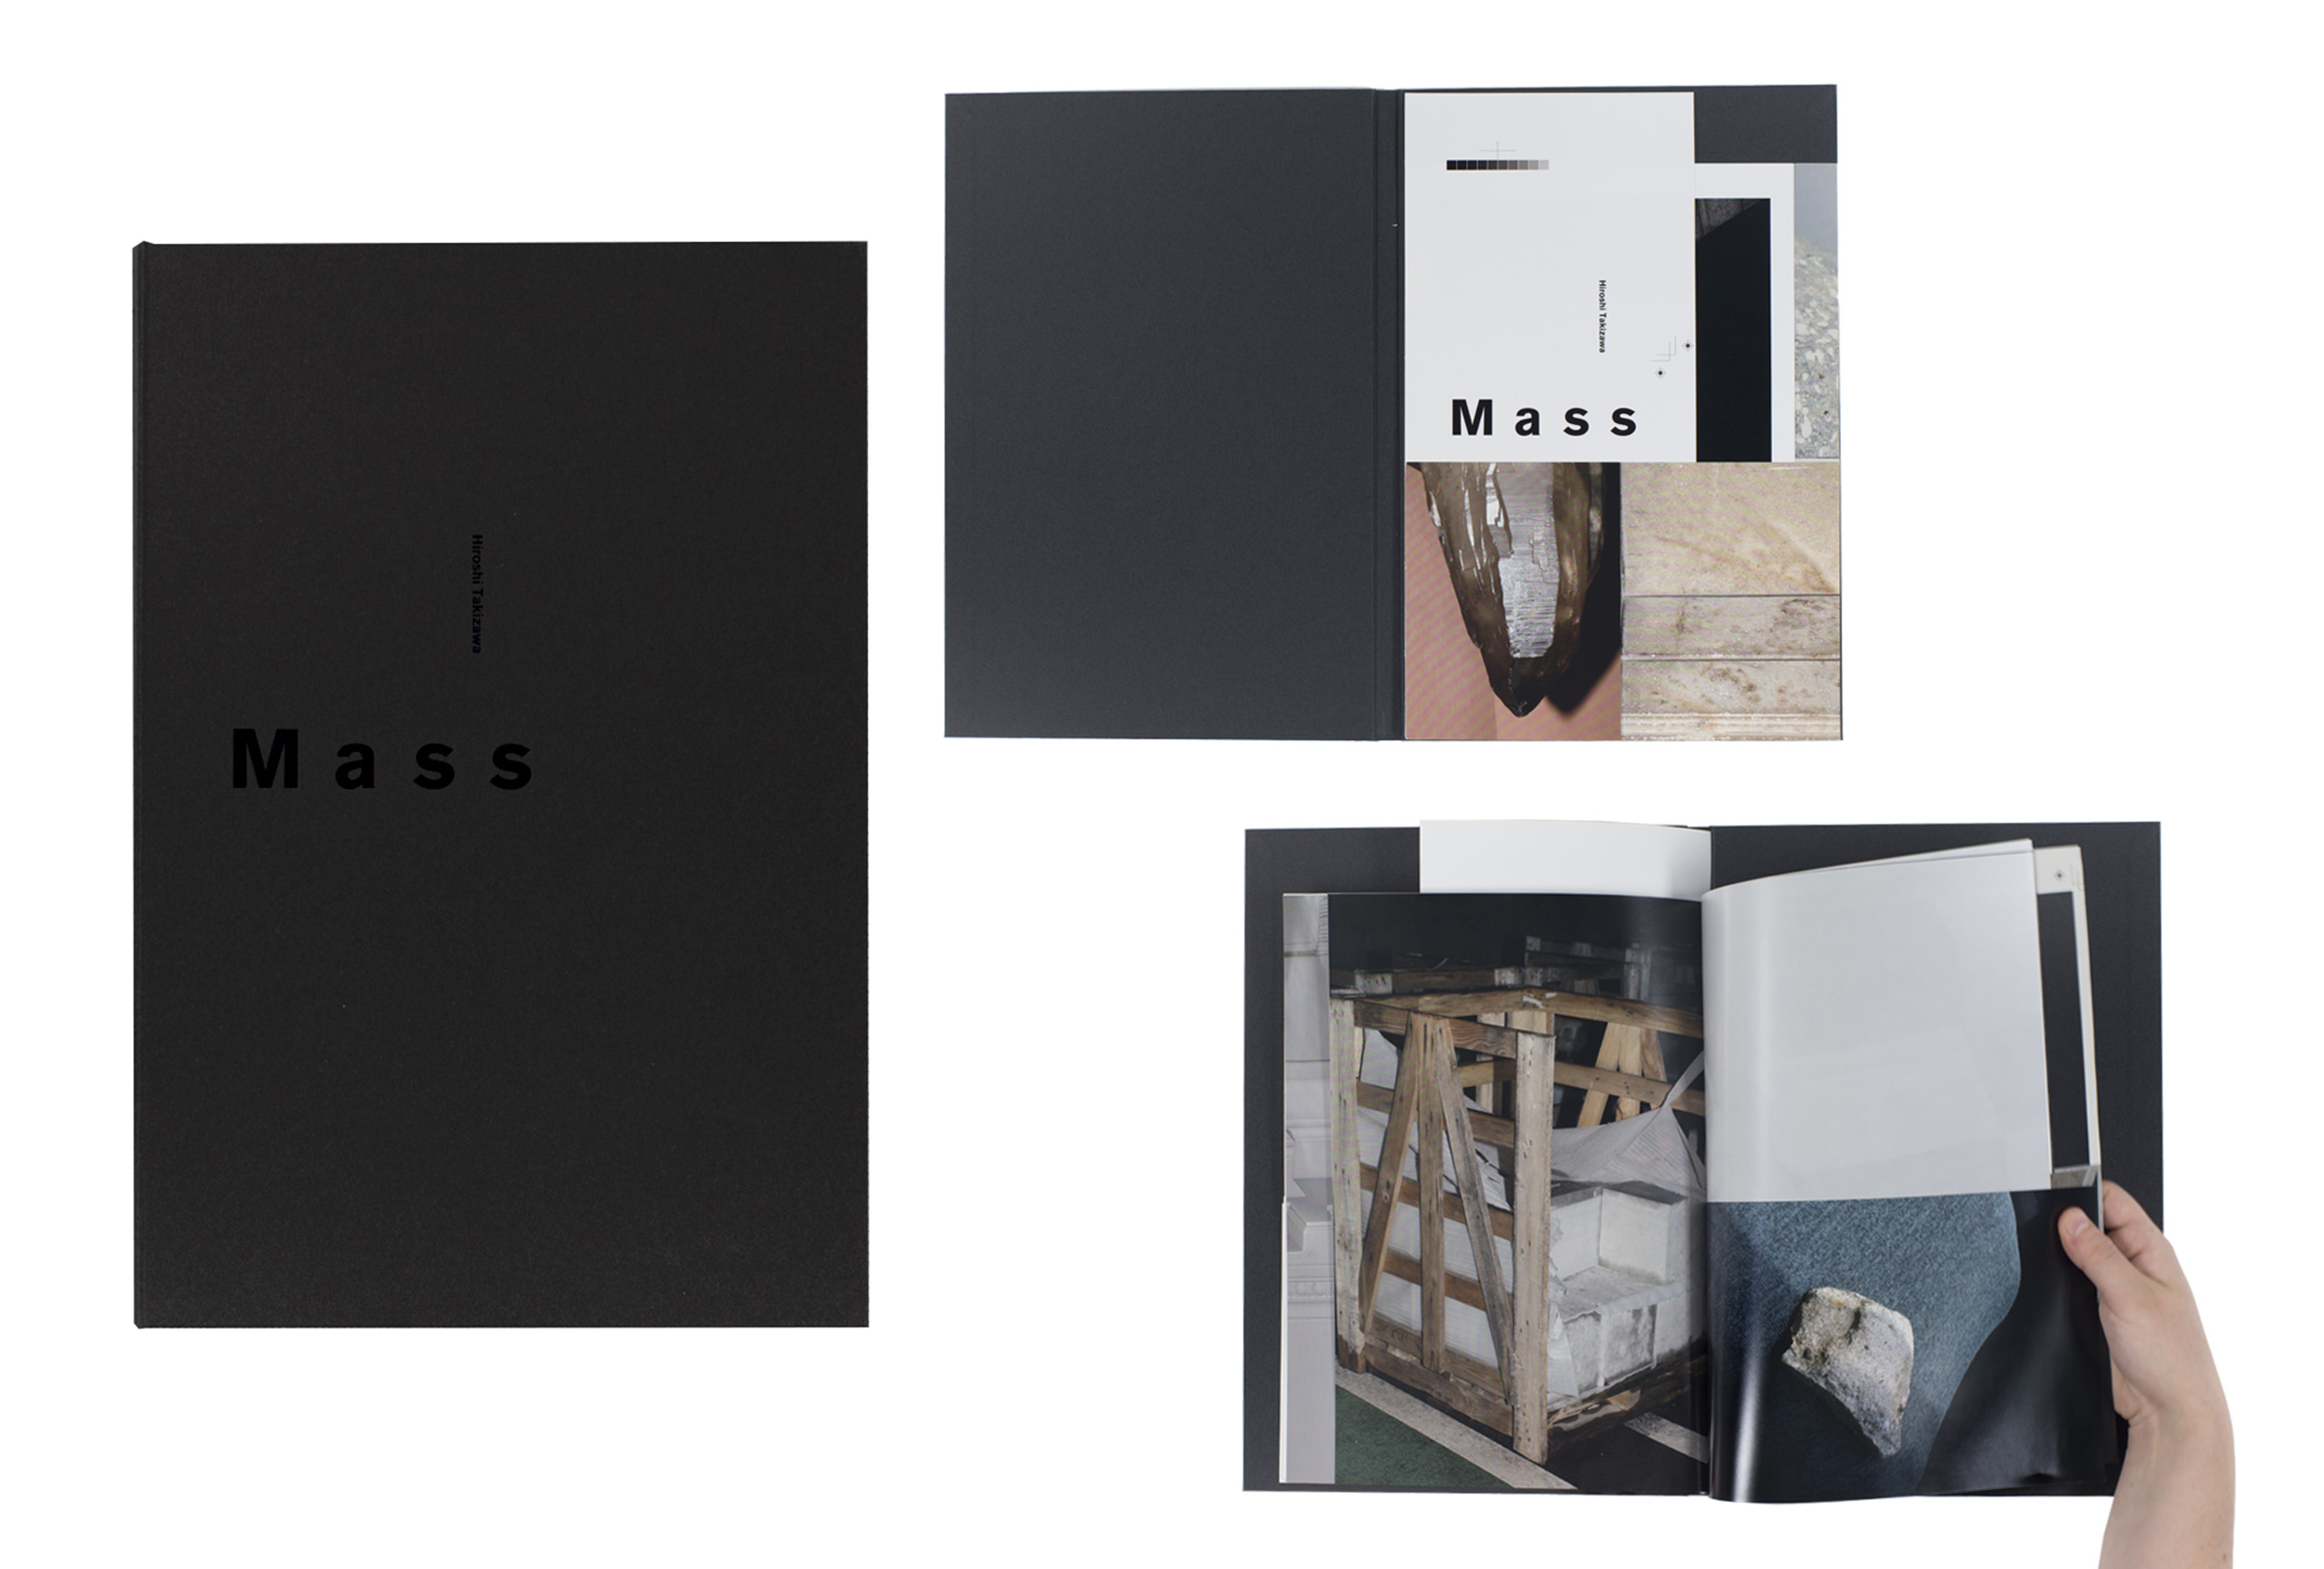 Mass by Hiroshi Takizawa, published by Newfave. Short-listed title for First PhotoBook.